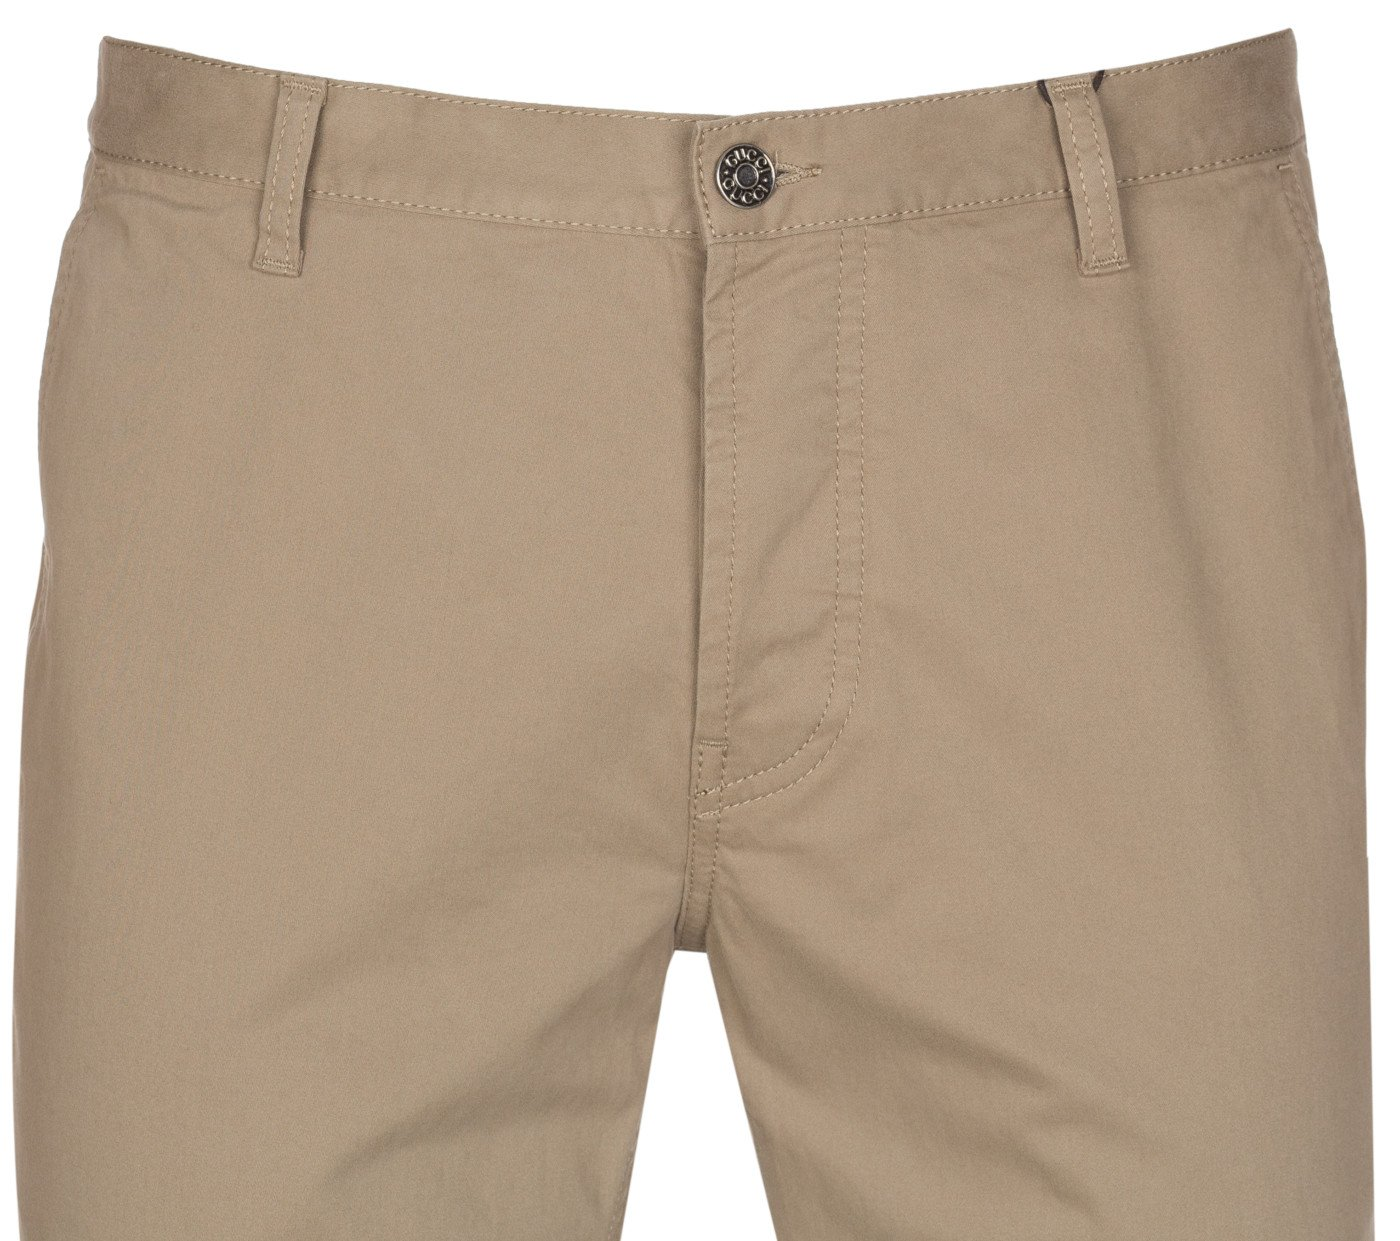 Gucci Men's Softened Stretch Cotton Short Chino Casual Pants, Beige, 28 by Gucci (Image #6)